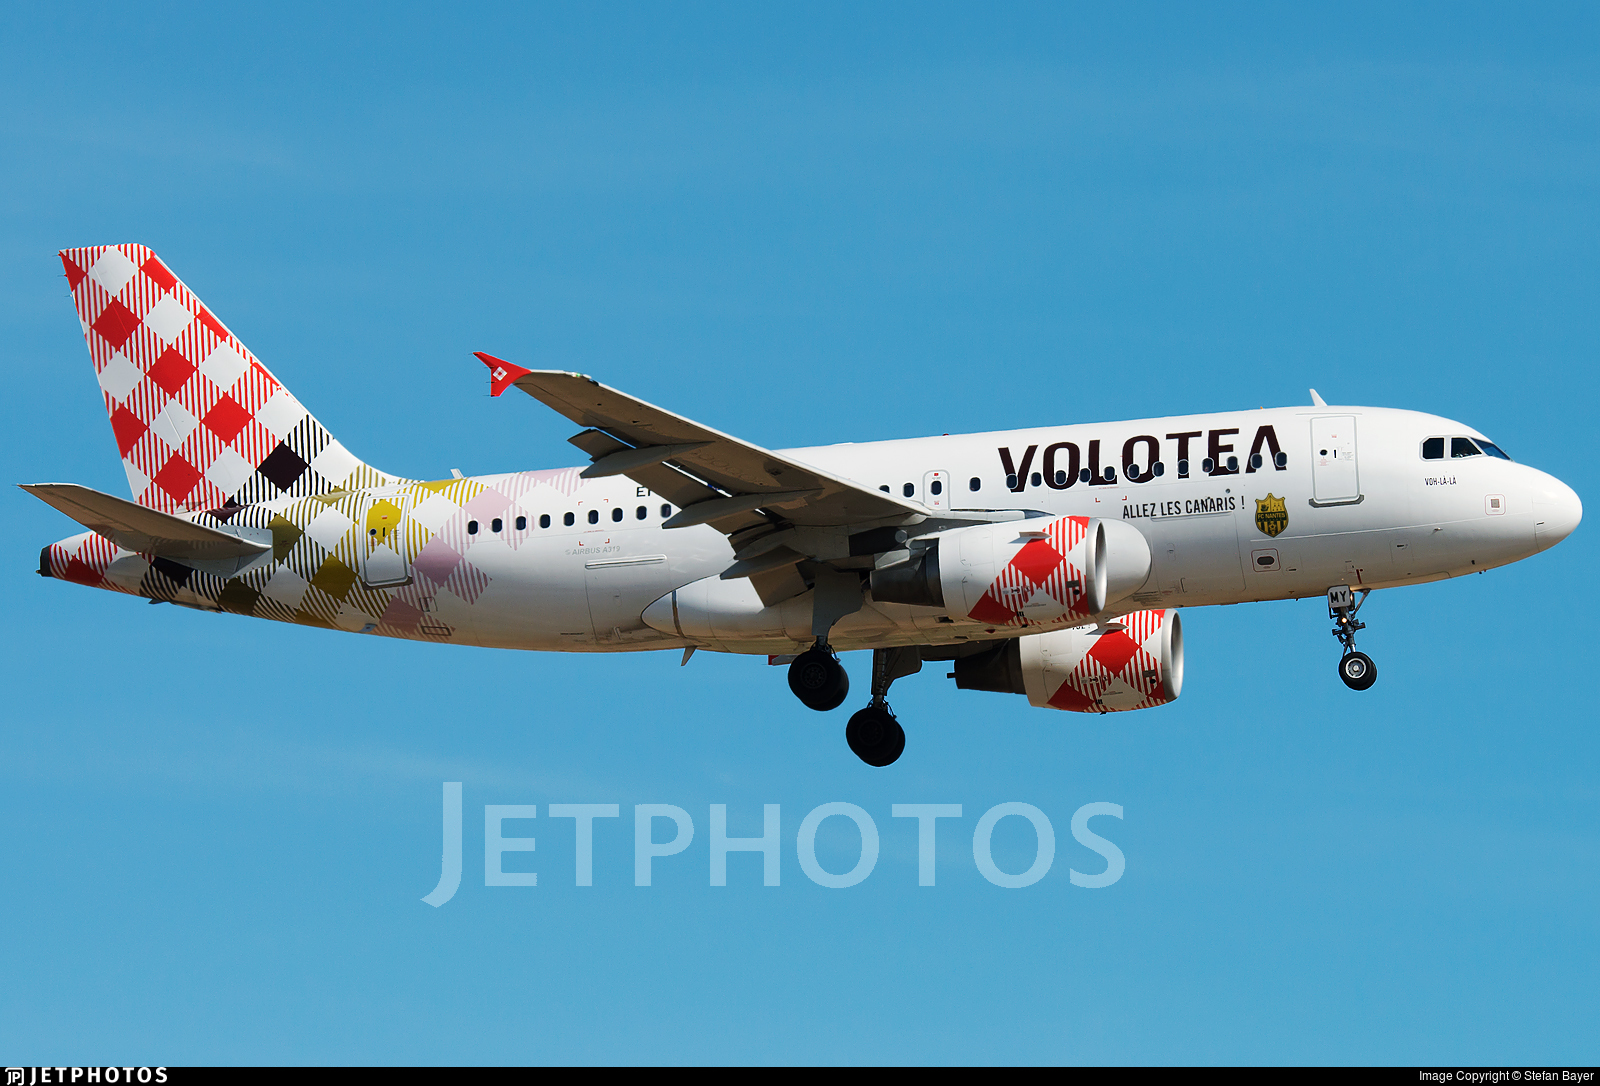 Airbus A319 Volotea aircraft profile sticker